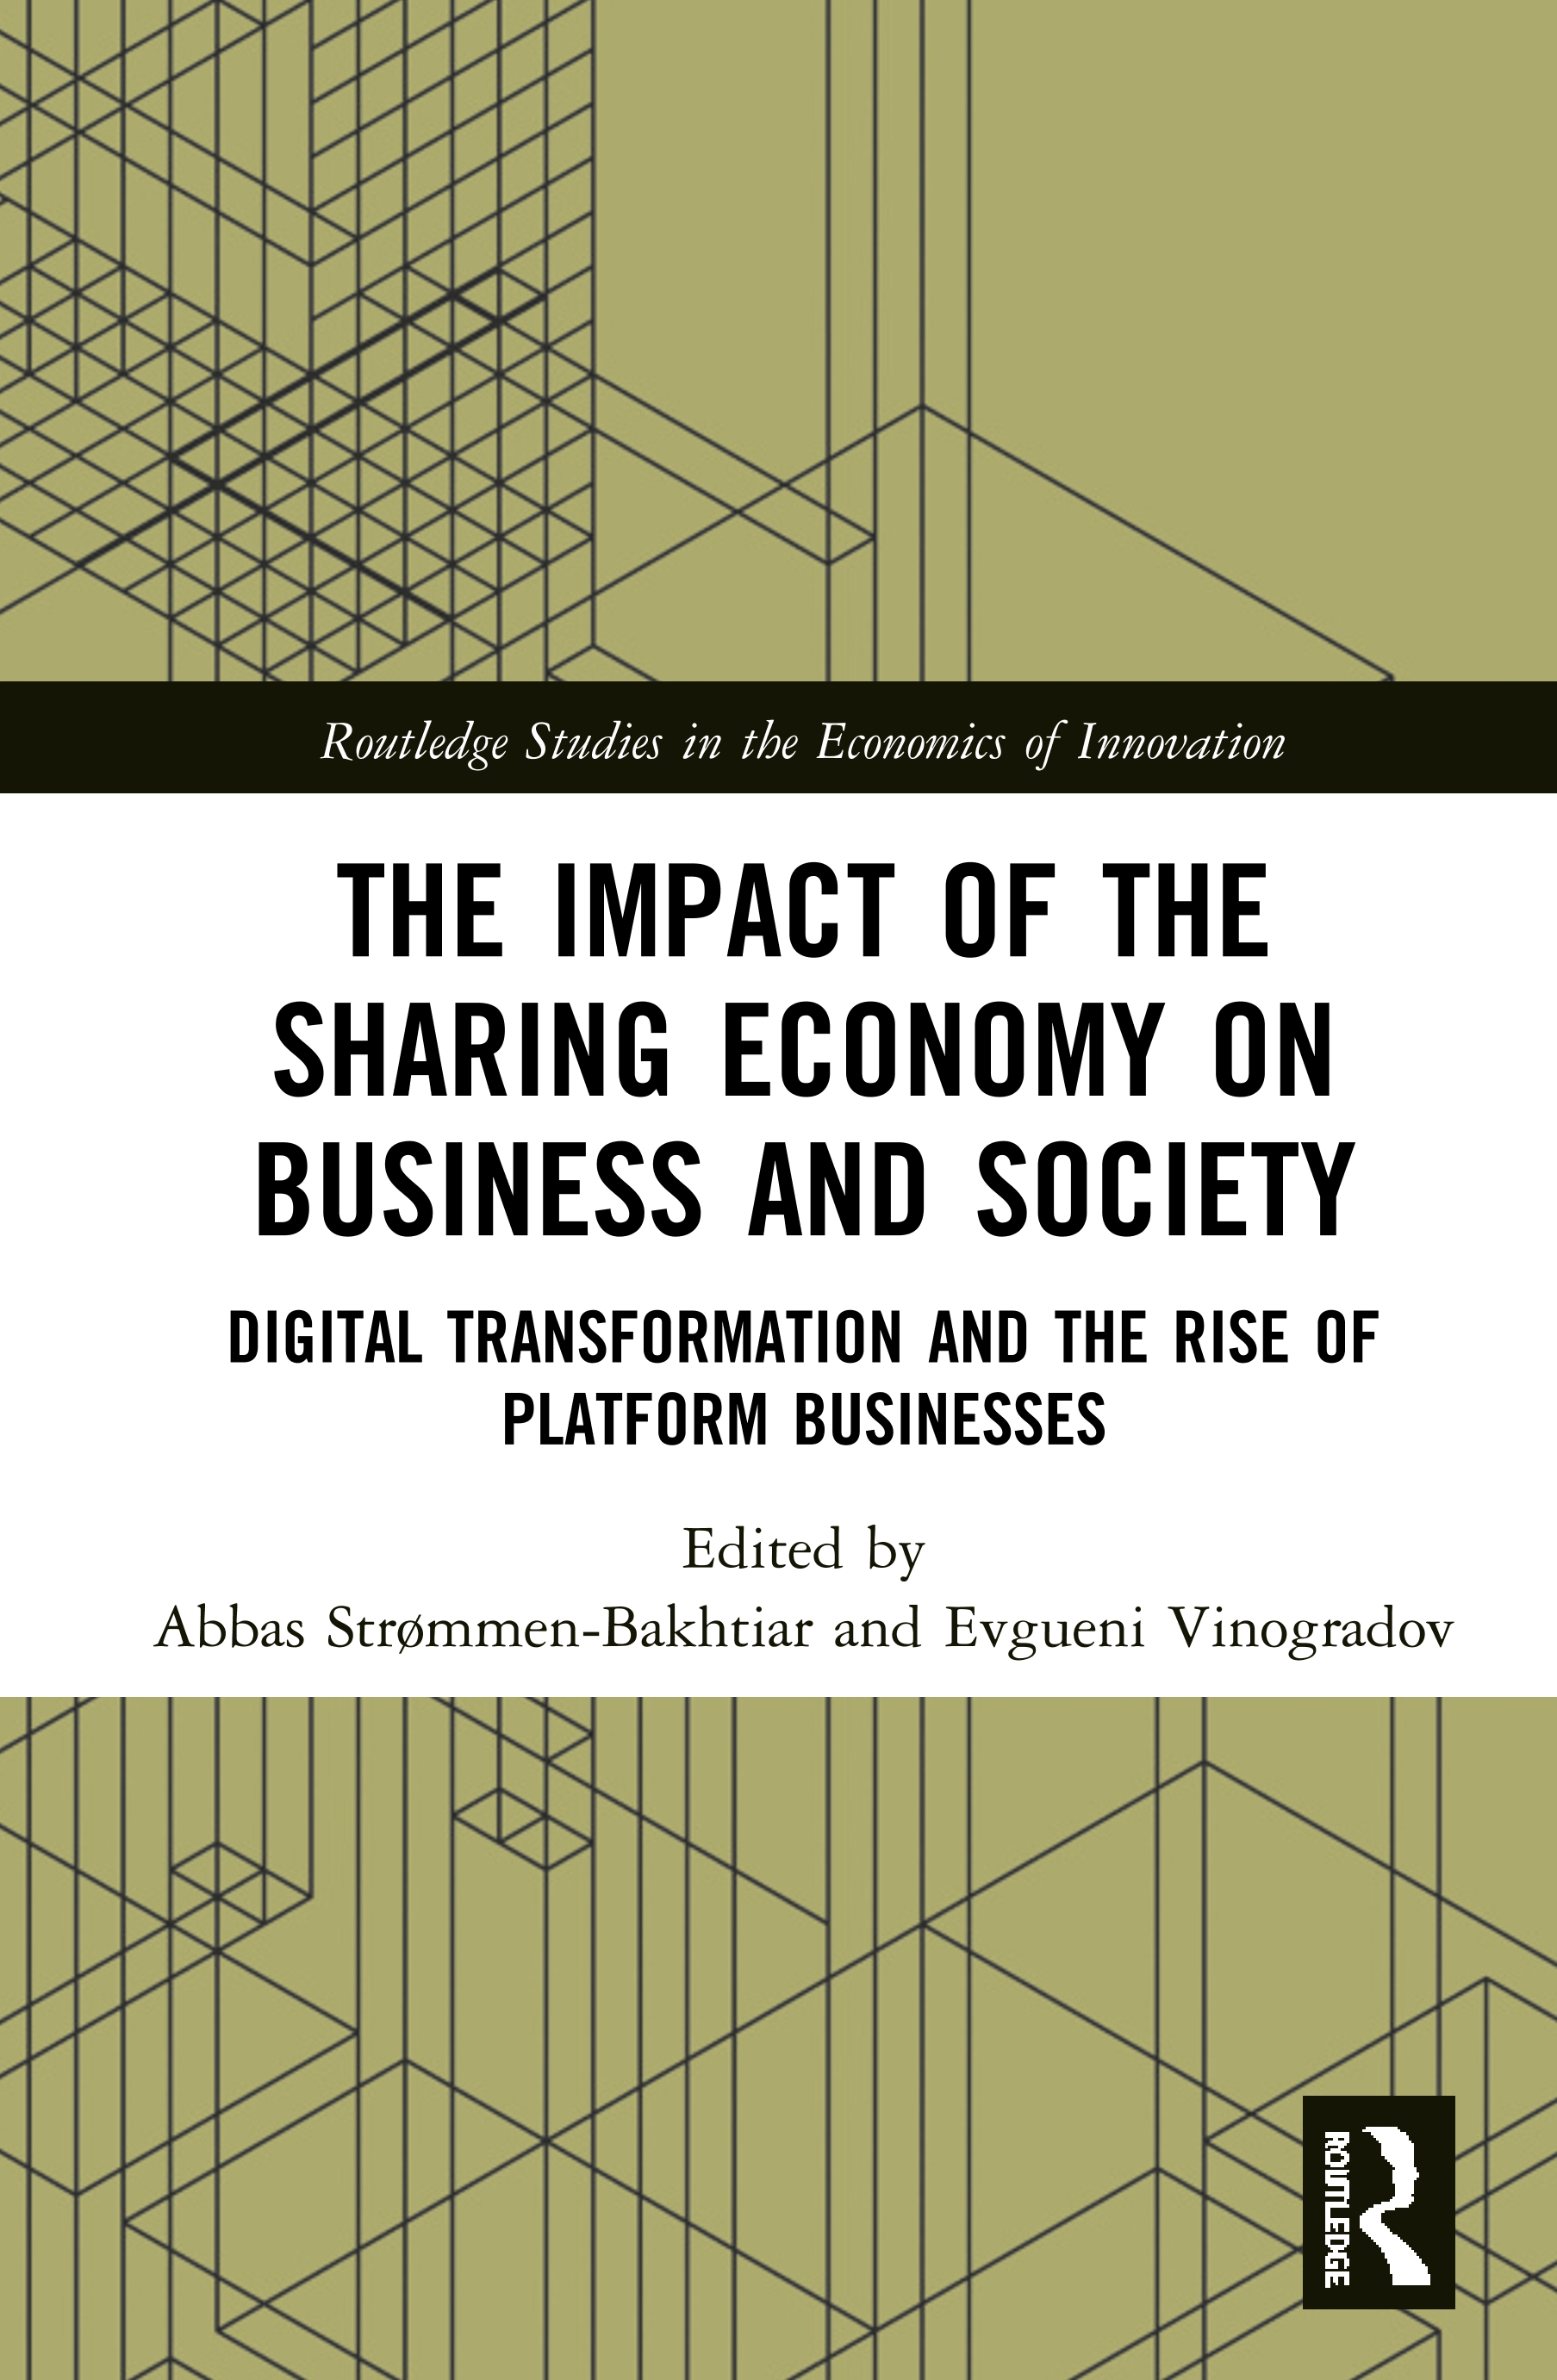 The Impact of the Sharing Economy on Business and Society: Digital Transformation and the Rise of Platform Businesses book cover